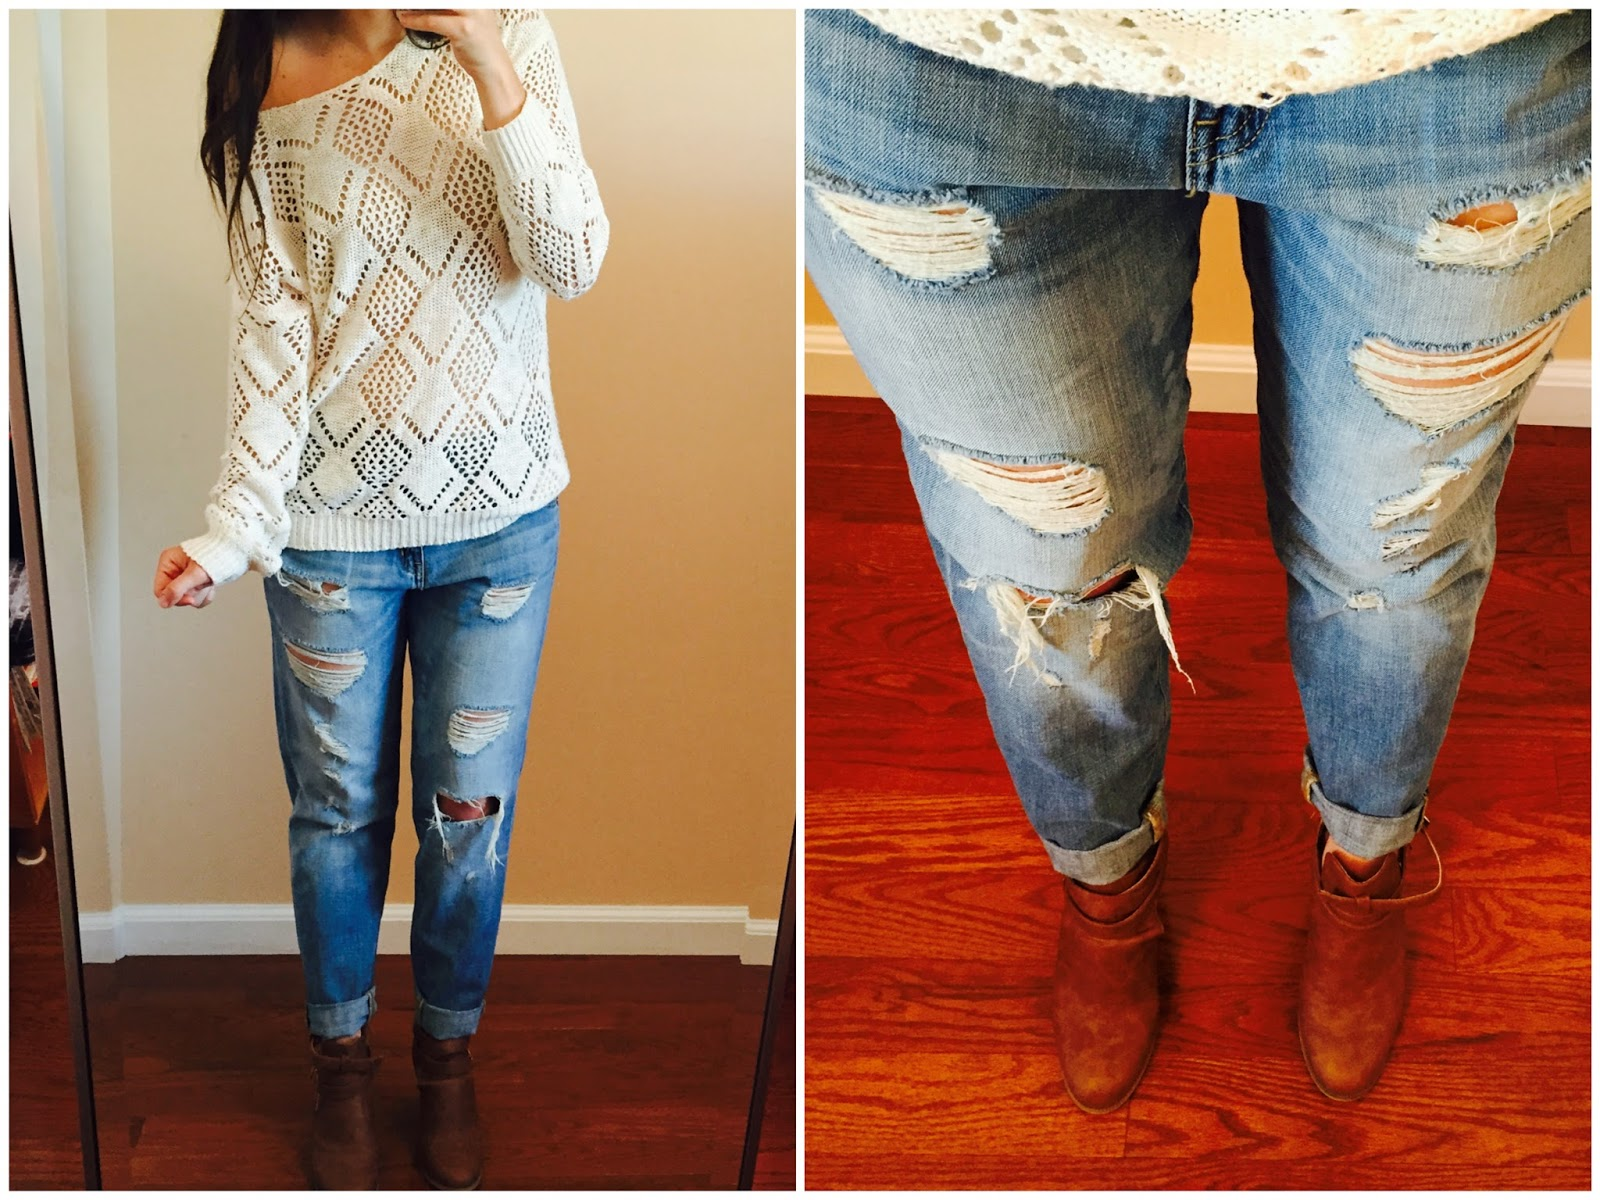 new target denim, new target styles coming soon, review on targets new jeans, target boyfriend jeans, target jeans, target skinny jeans,